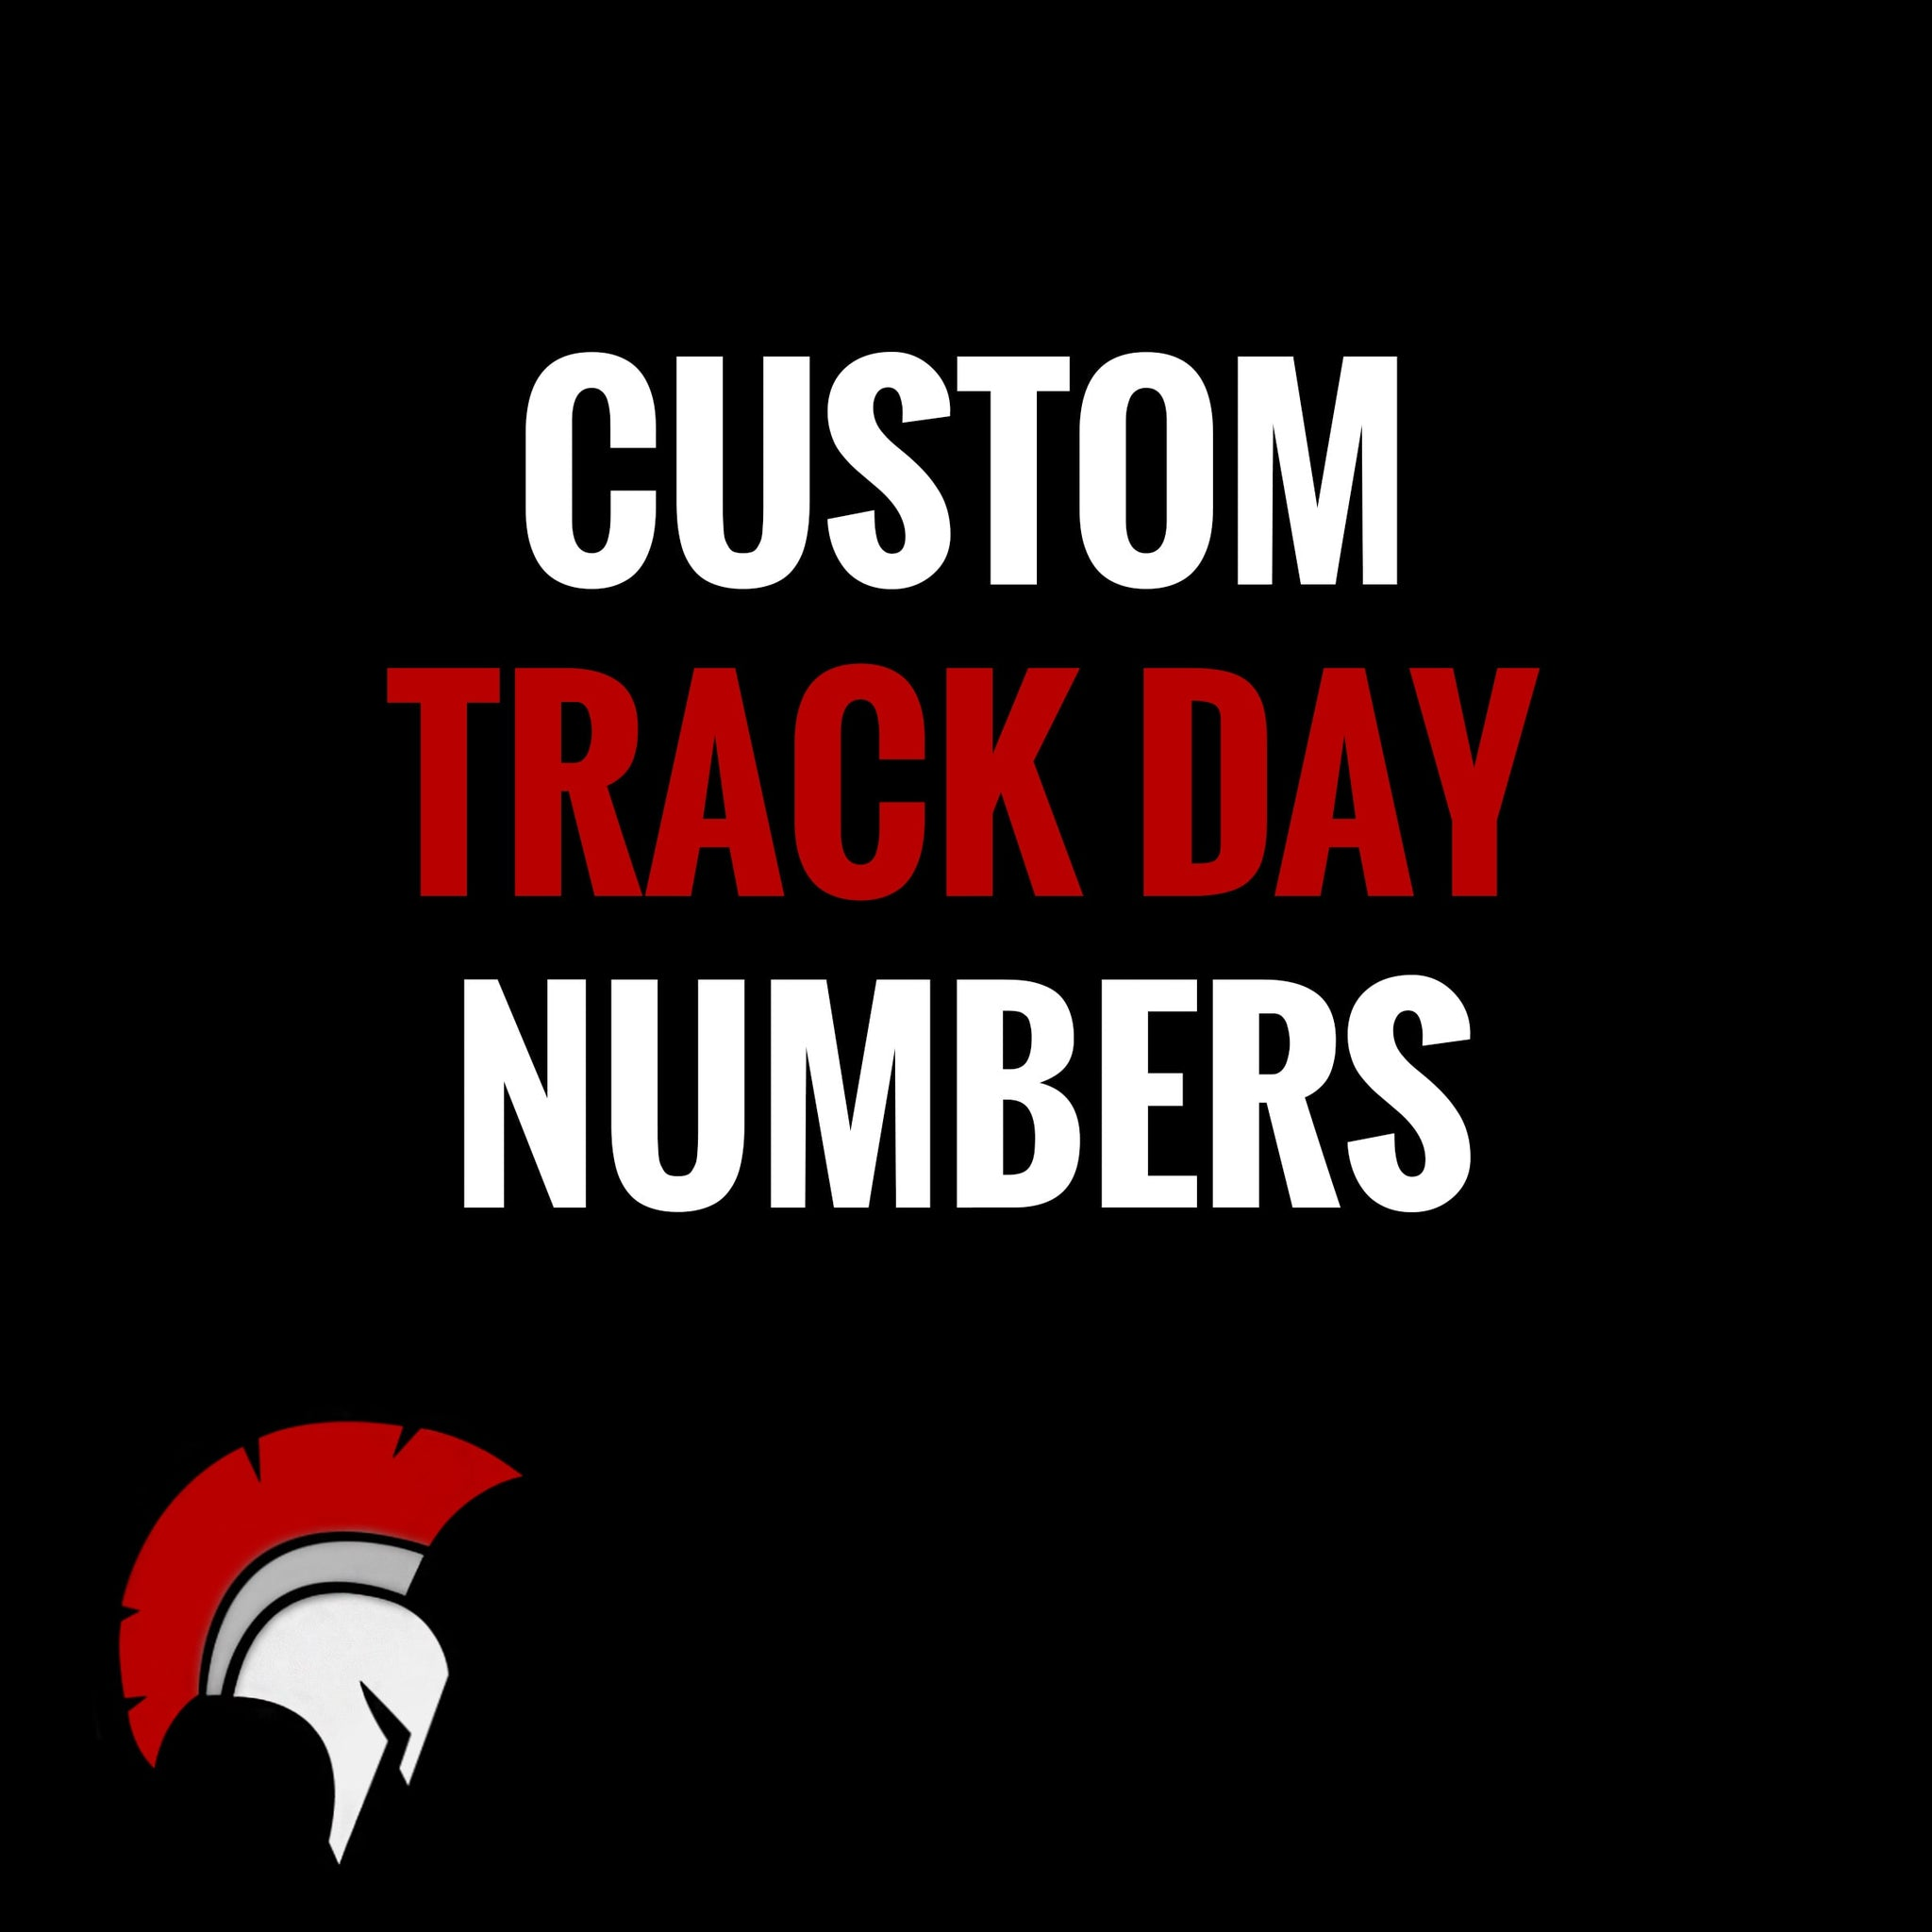 Adhesive Number Decals For Track Days